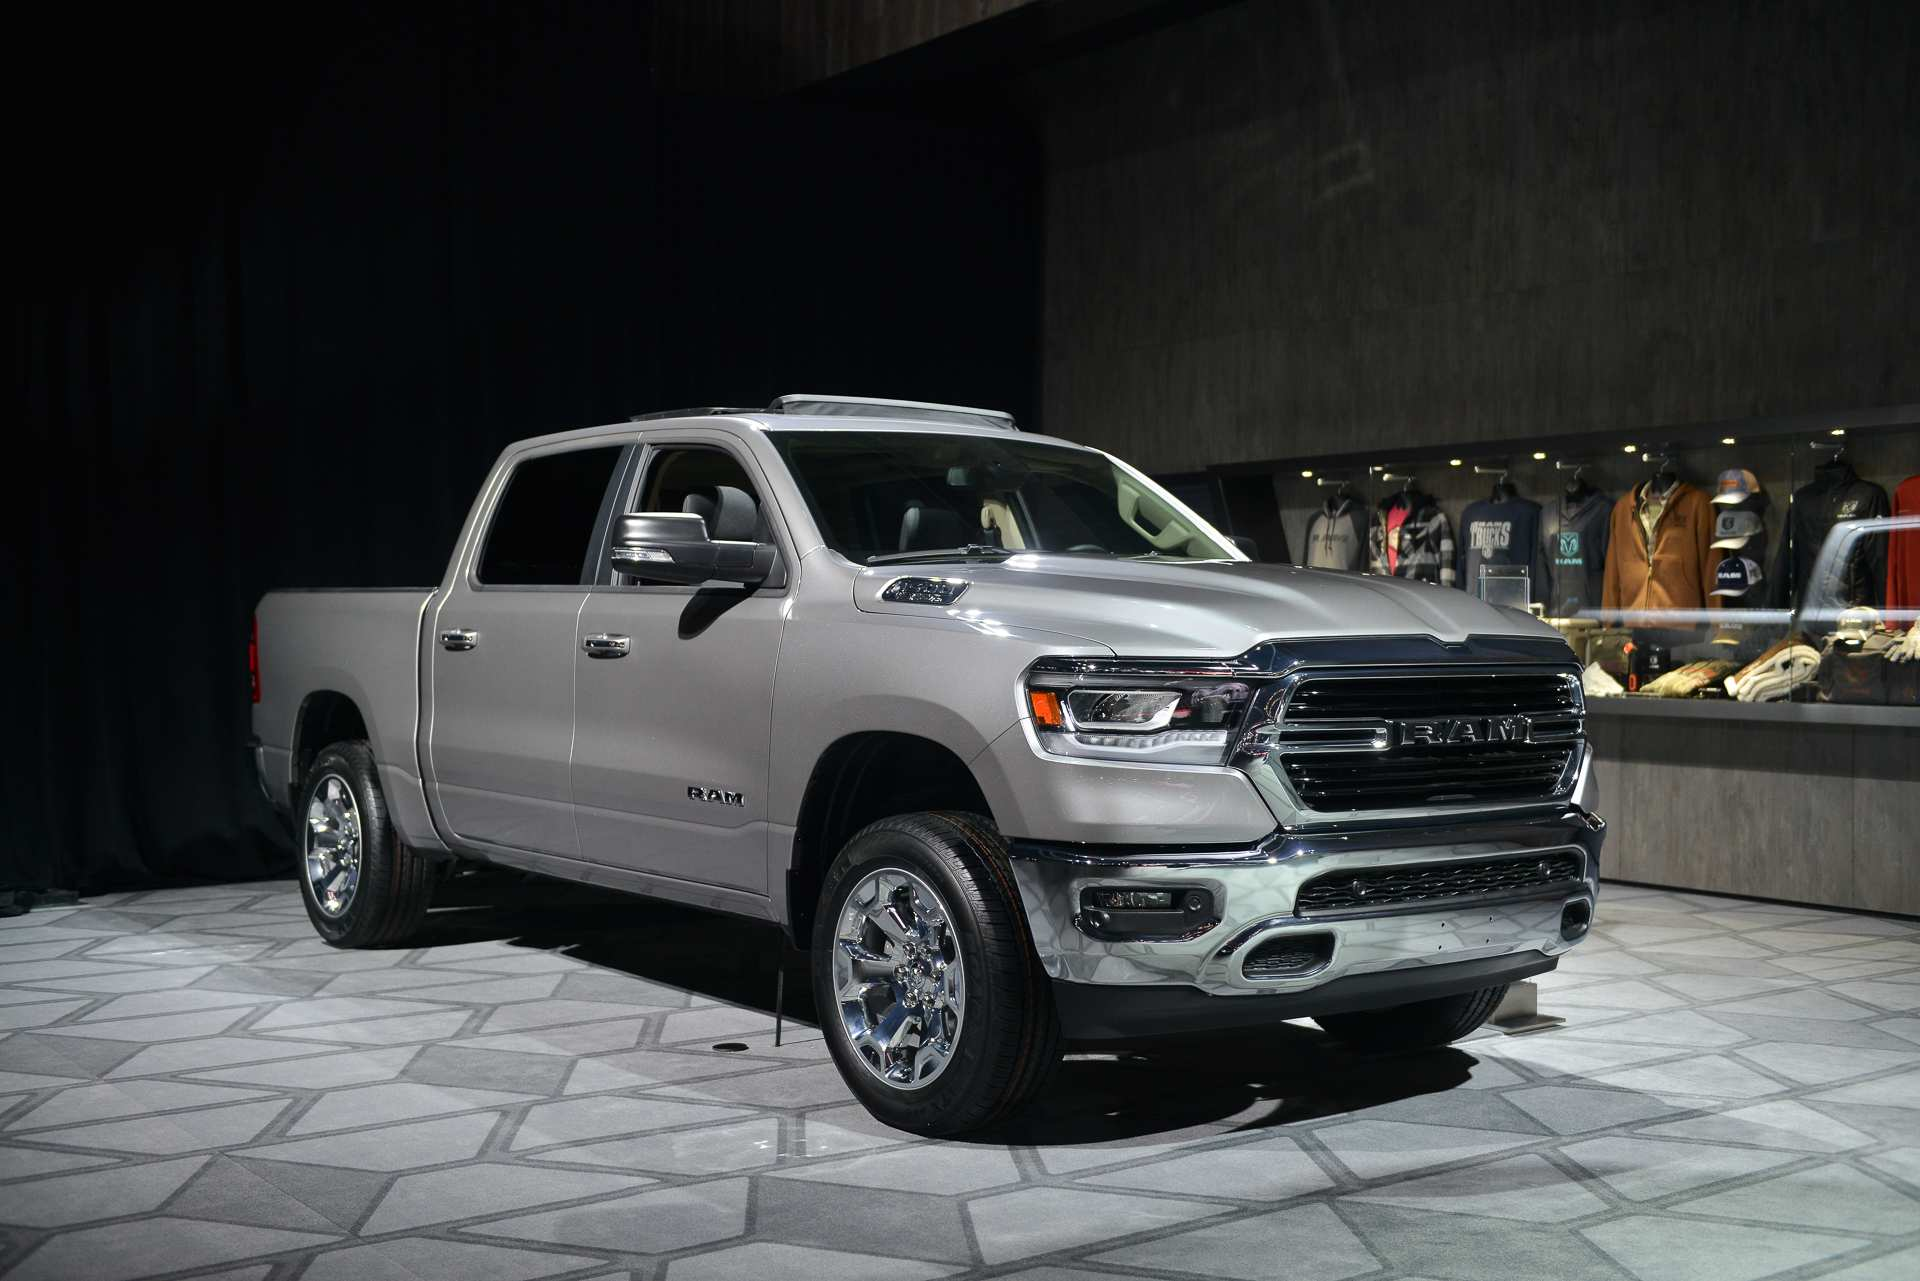 91 Great 2019 Dodge Ram Pick Up First Drive with 2019 Dodge Ram Pick Up